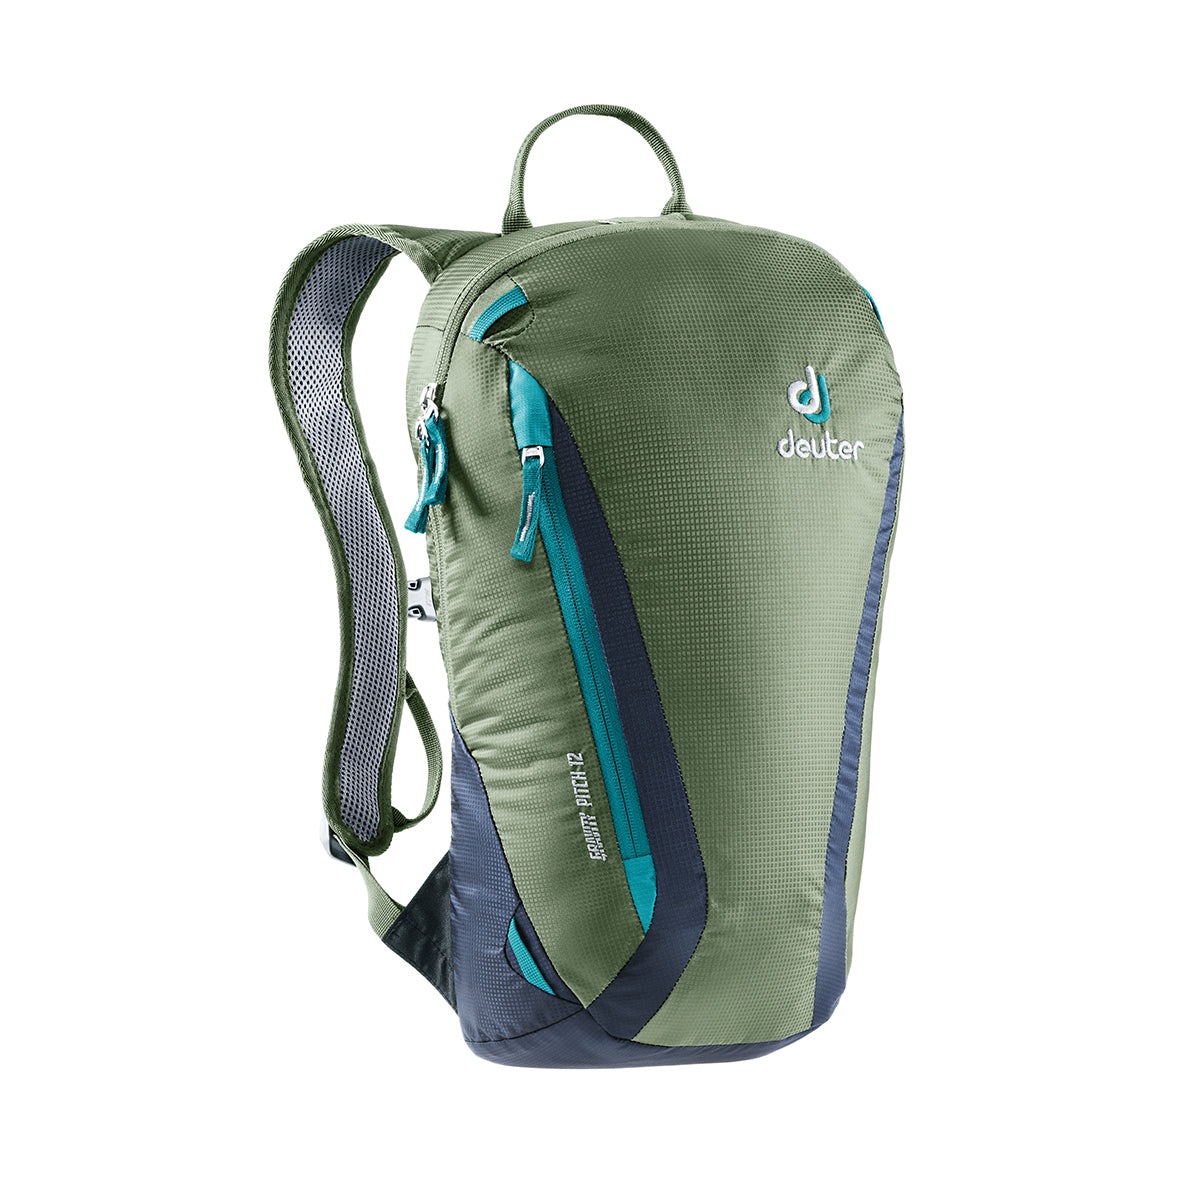 deuter gravity pitch 12 climbing pack front view in color green and navy blue